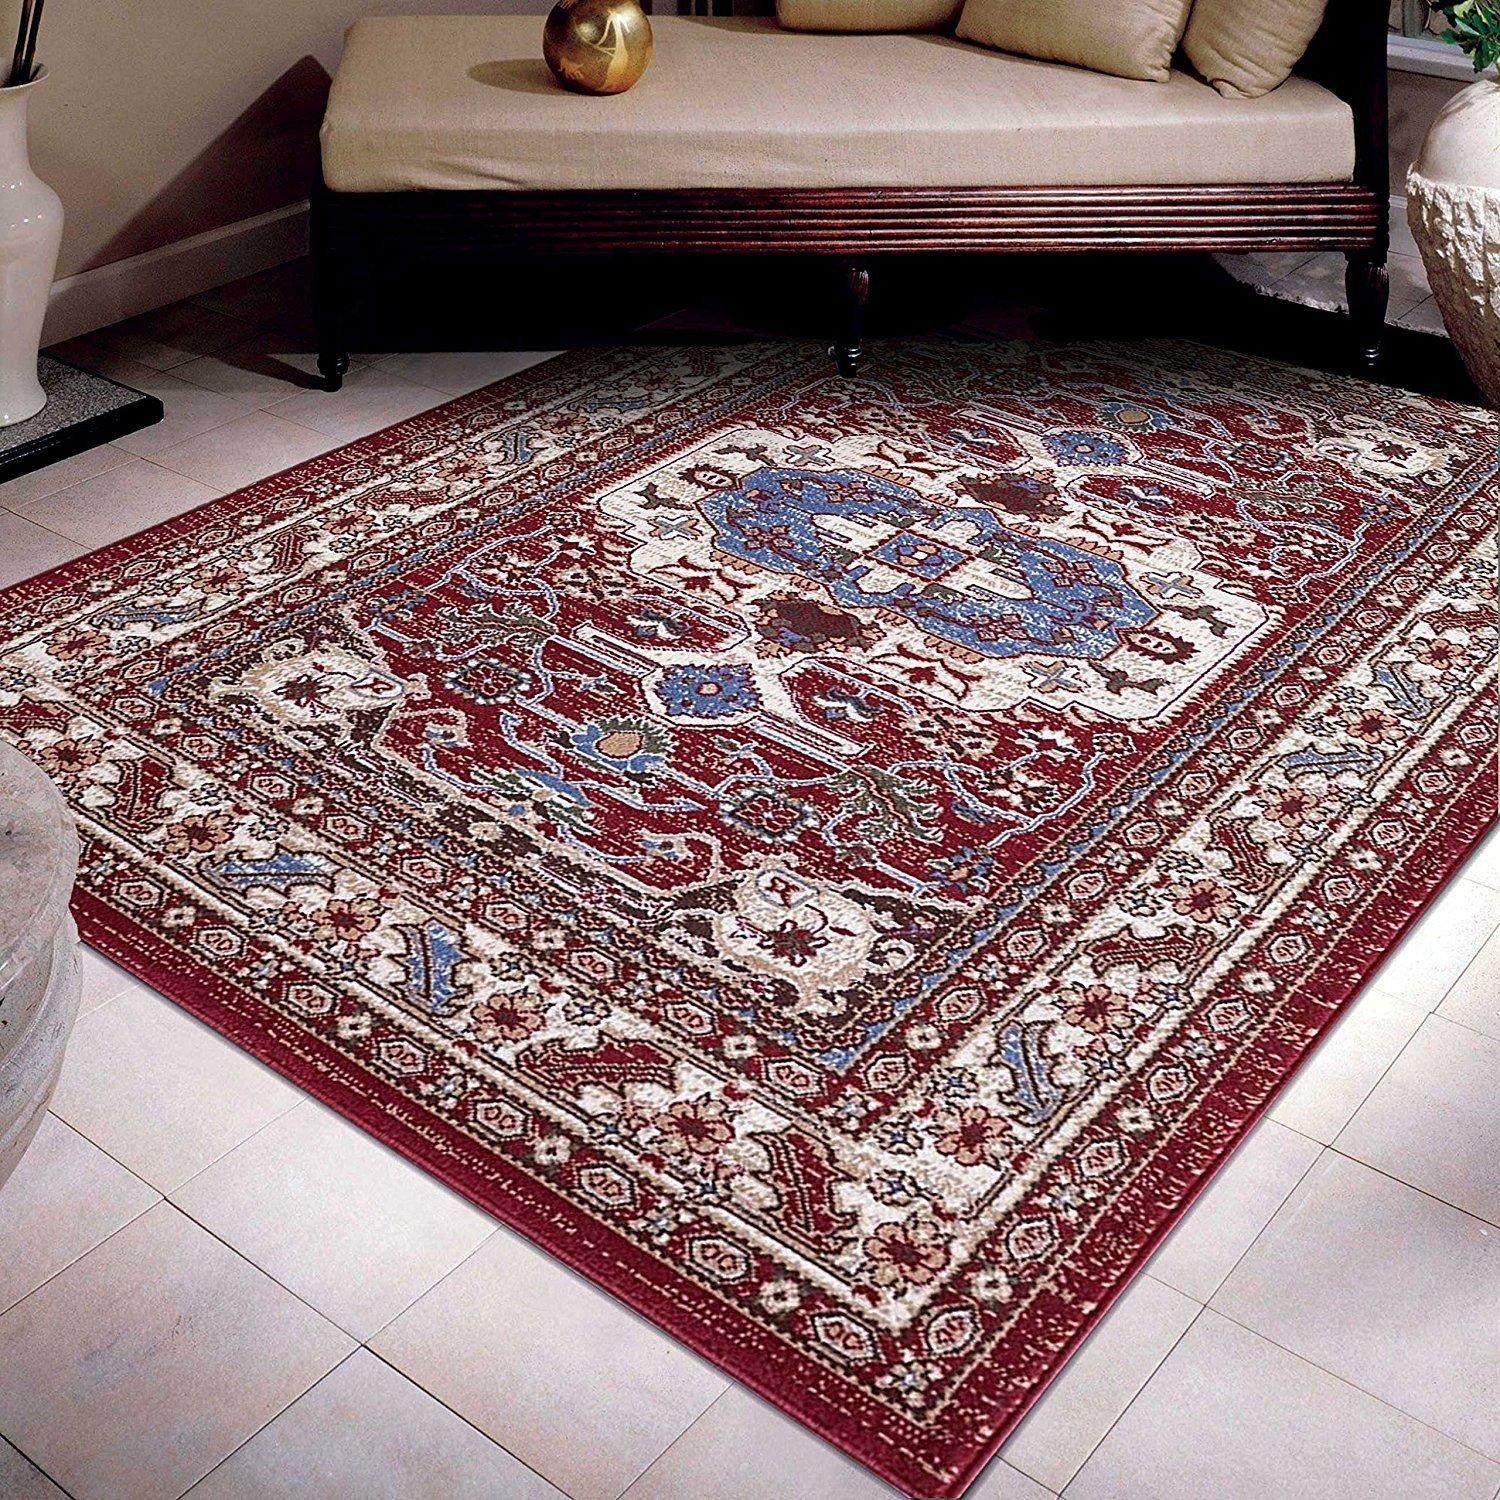 Traditional Living Room Carpets Cream Blue Red Classic Traditional Living Room Floor Rugs